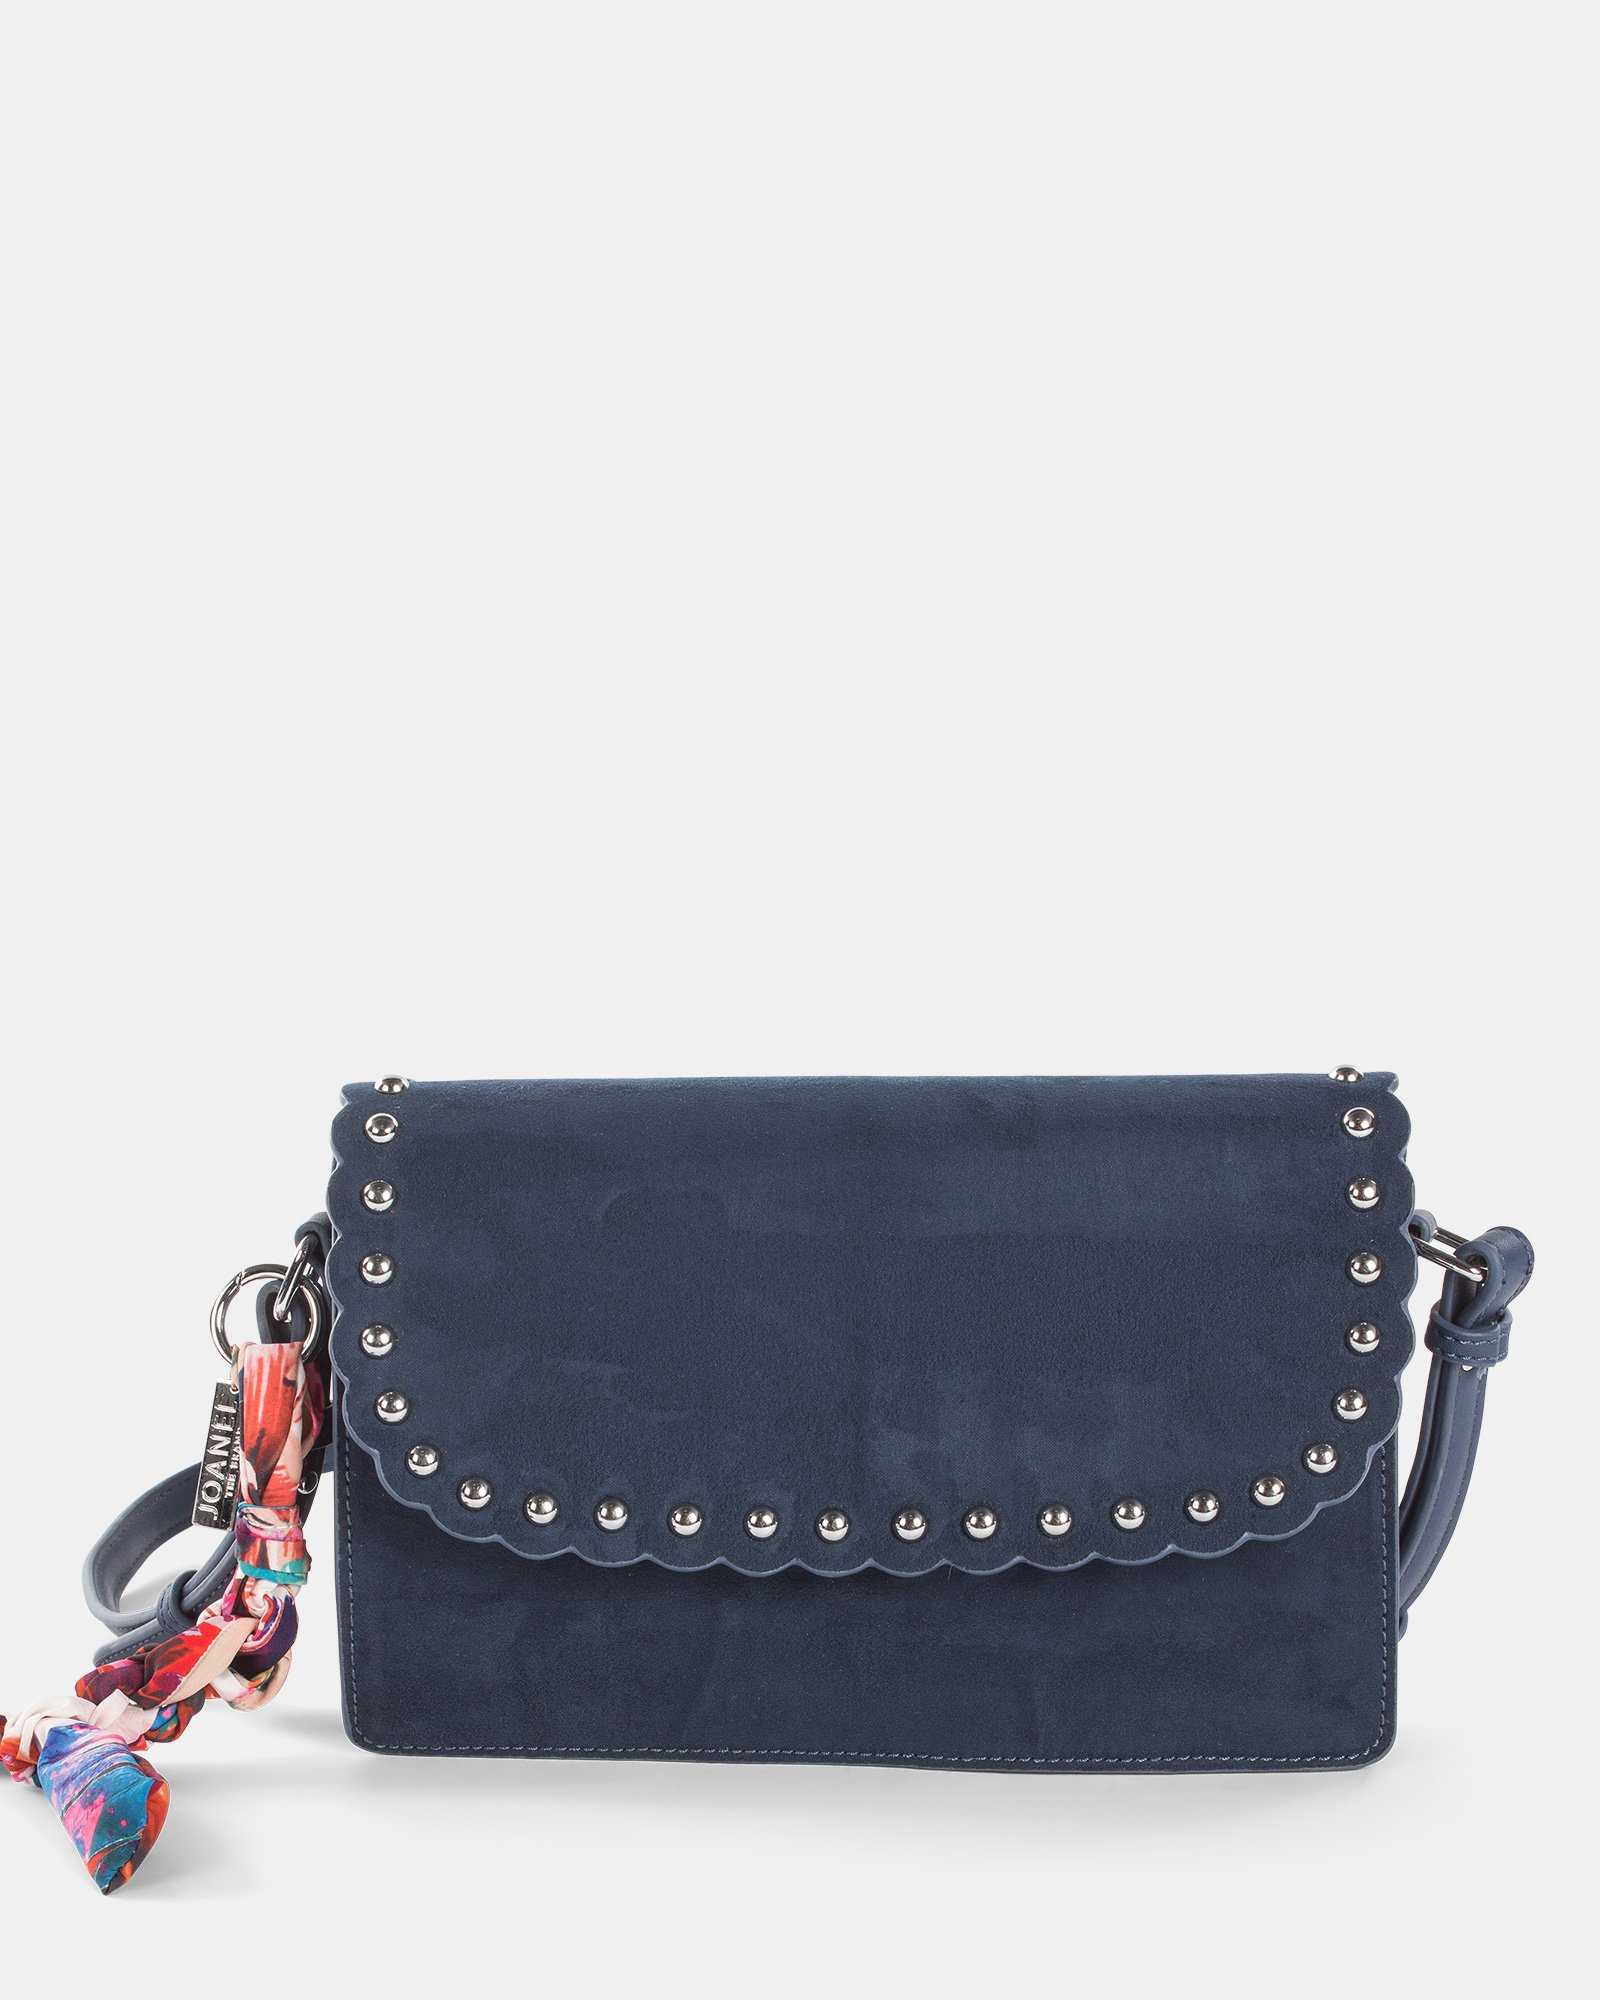 Pixie Flap Bag - Joanel - Zoom